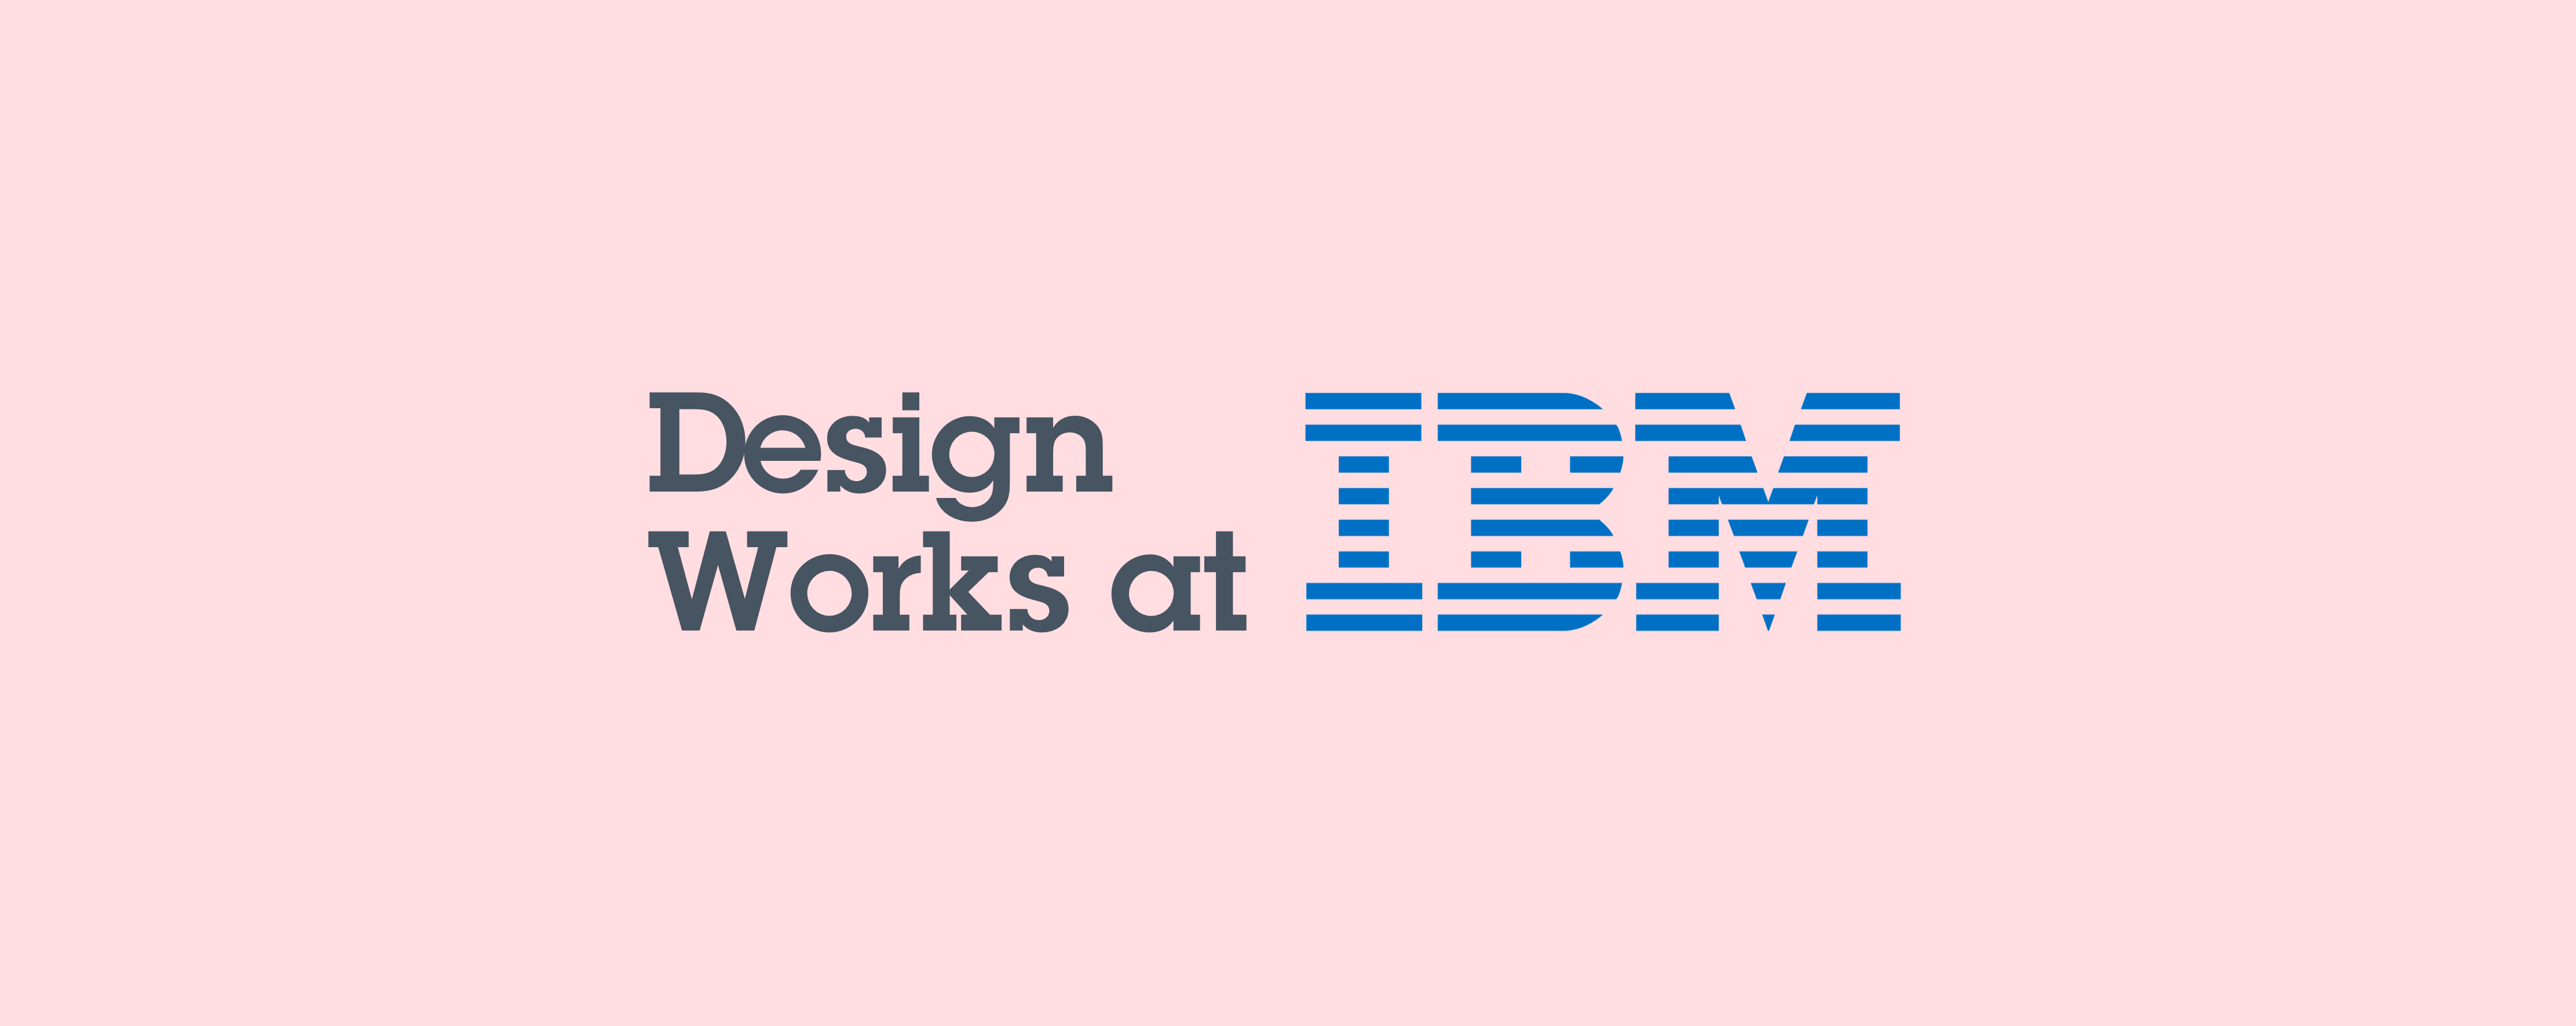 Design Works at IBM